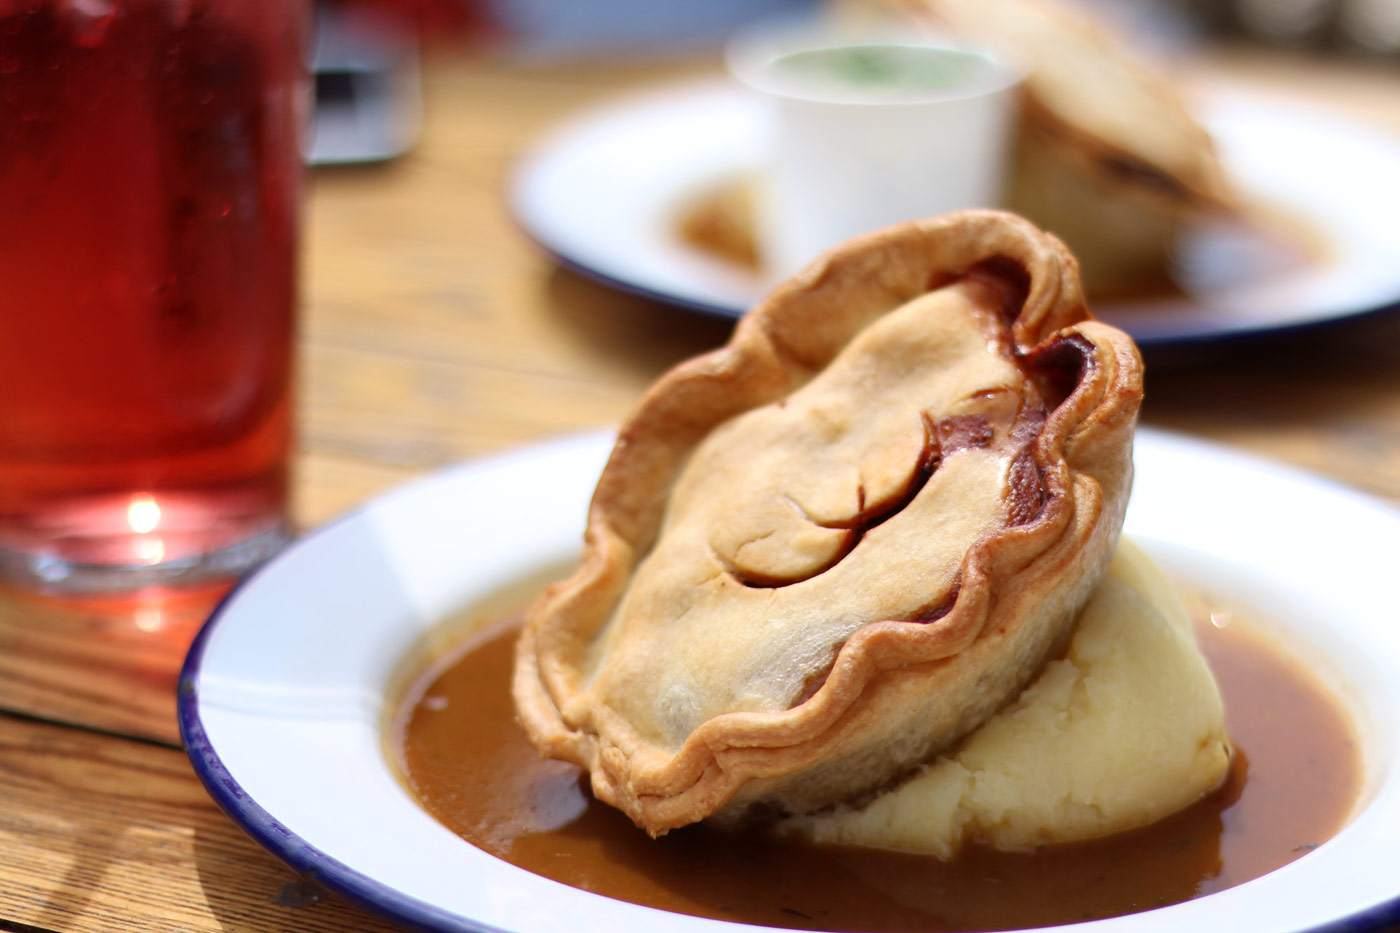 redhouse-pies-mash-gravy-review-newcastle-NE1-quayside-1